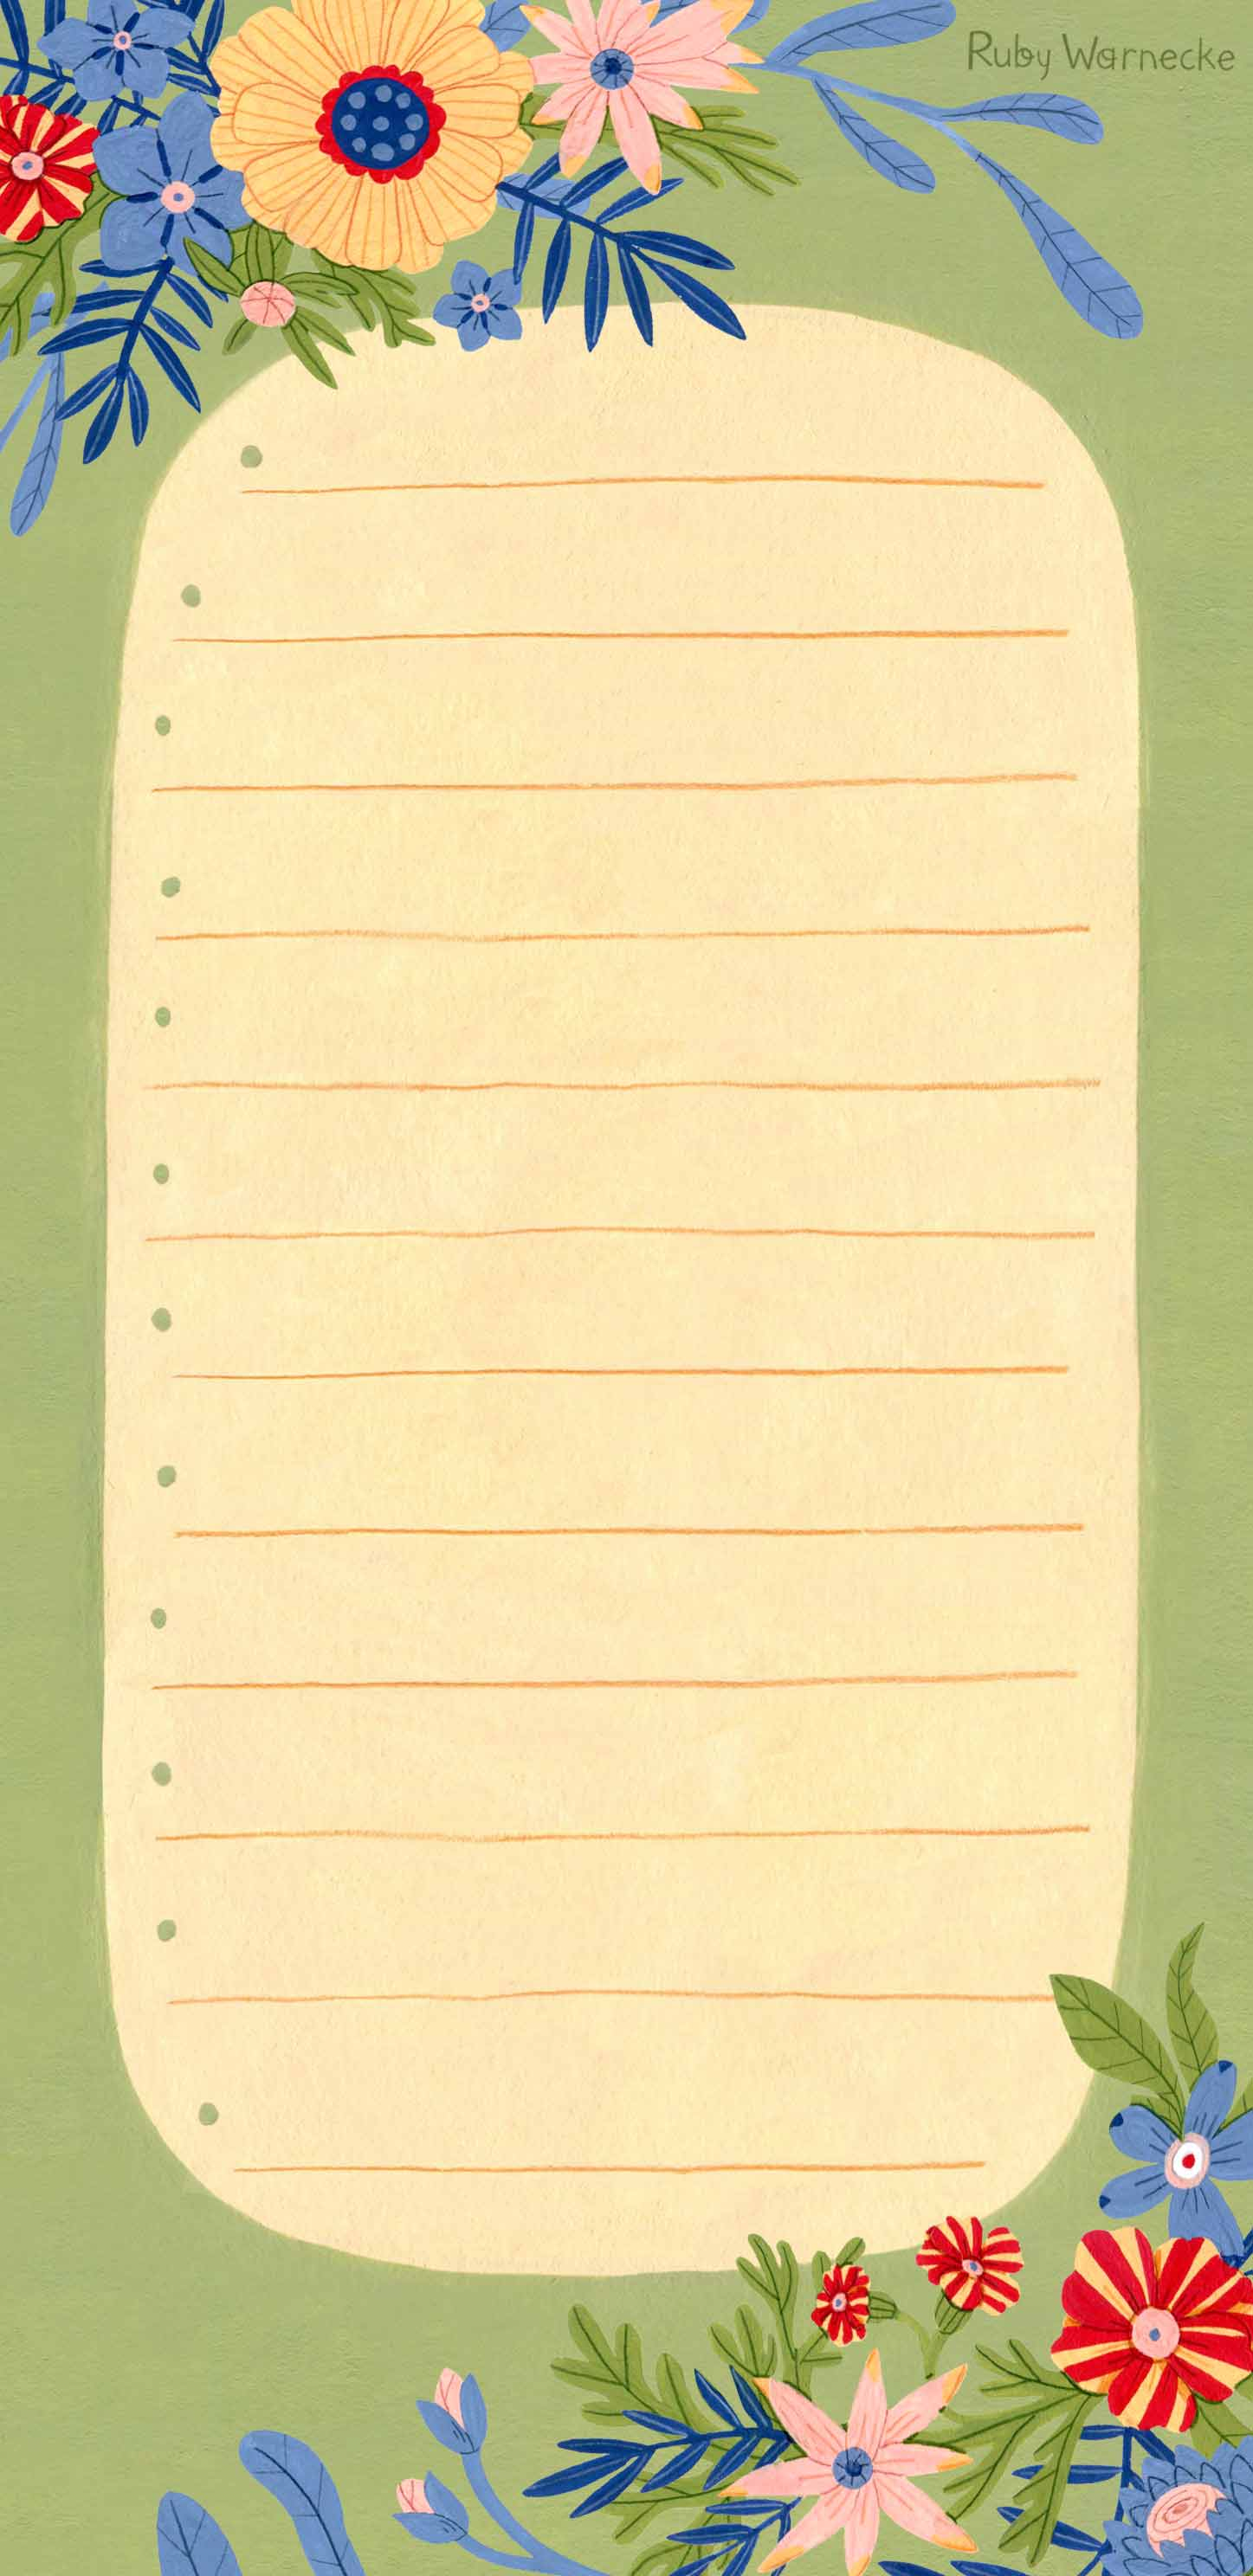 Copy of flowers - shopping list